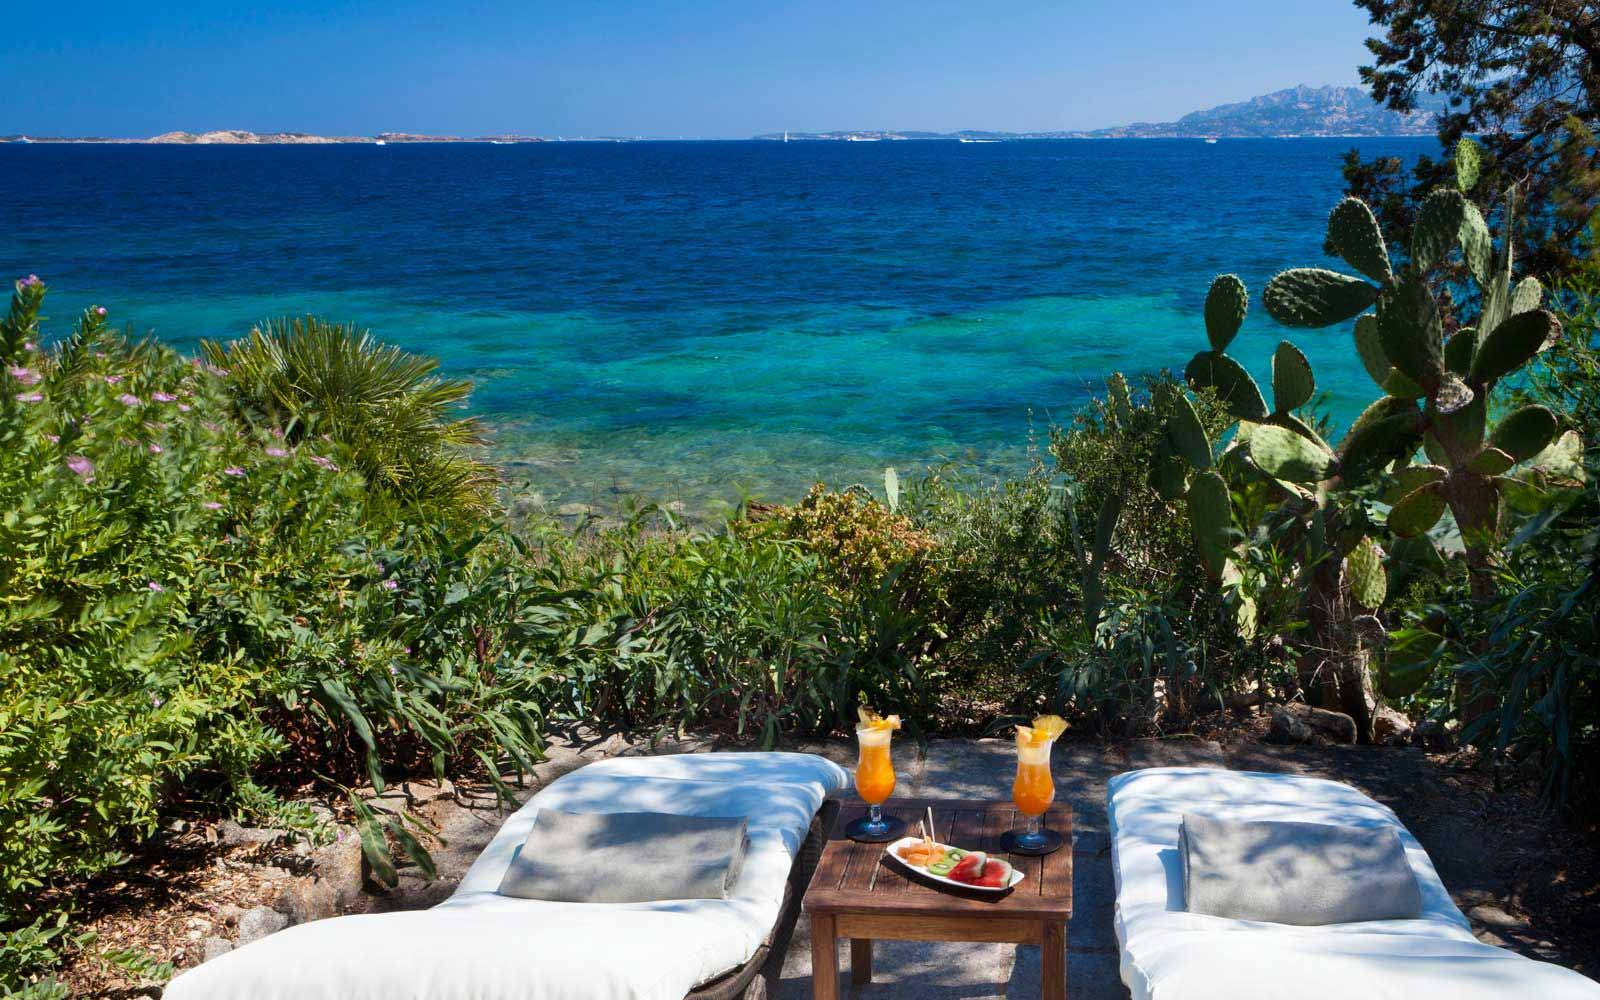 Sun loungers at Hotel Capo D'Orso Thalasso & Spa